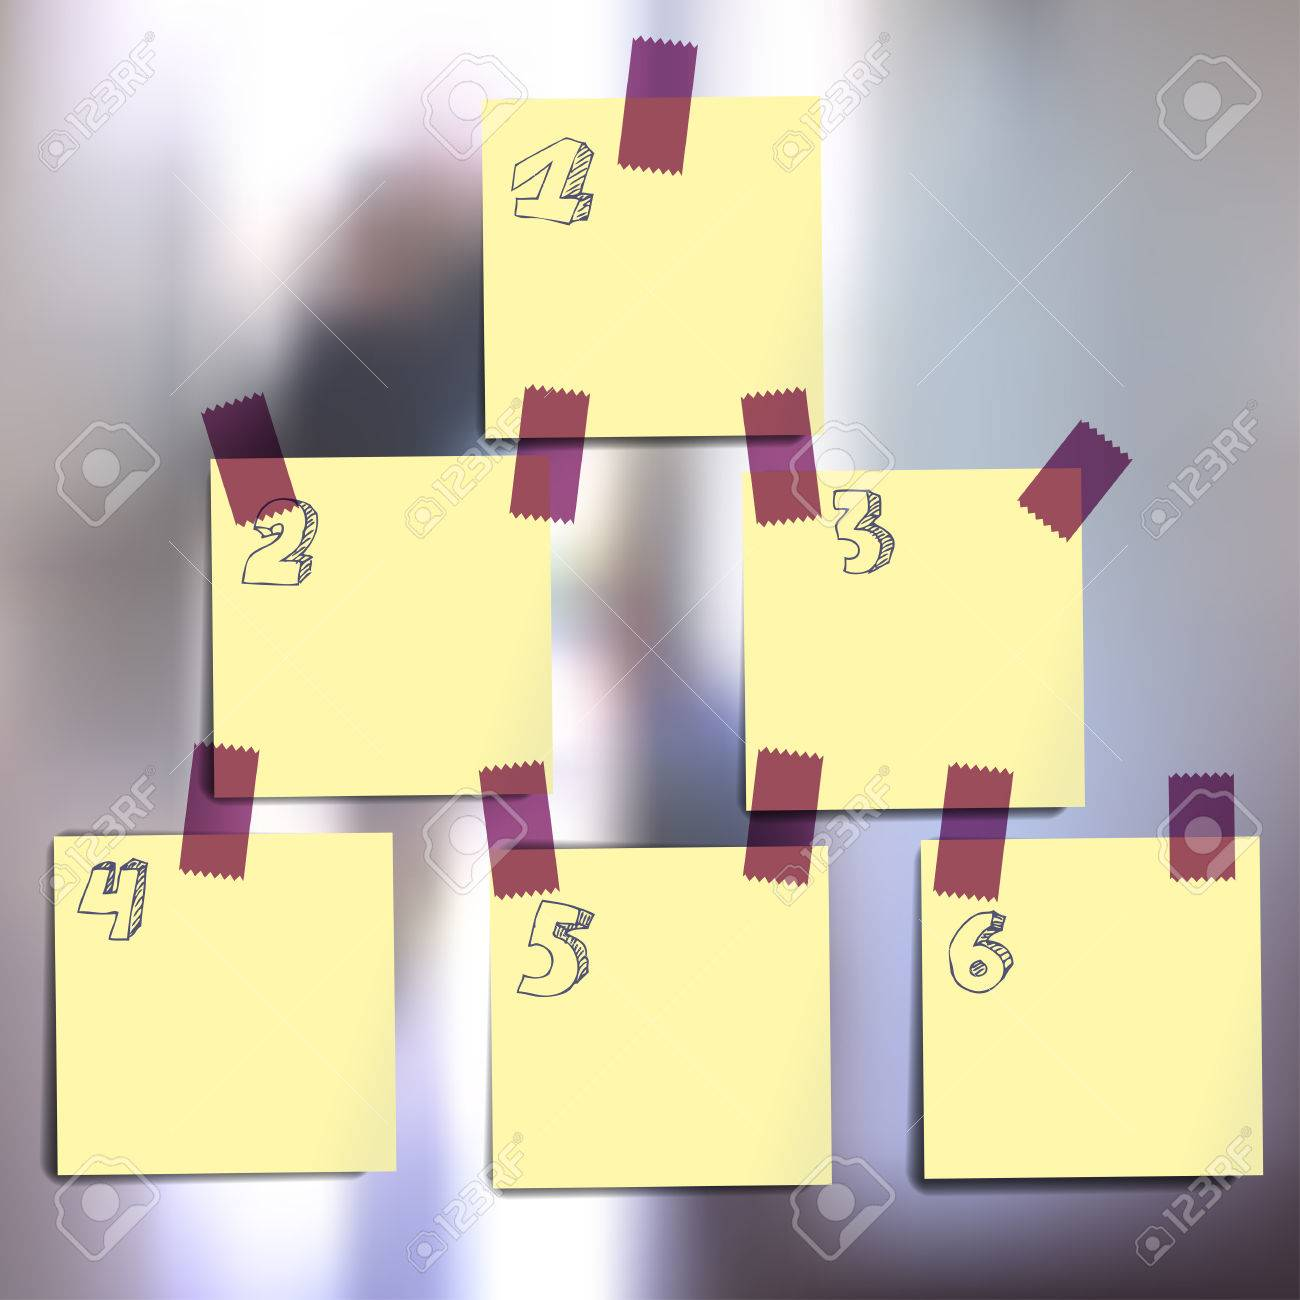 Sticky notes wallpapers on blurred vector background. Original infographics with the numbers of stages Stock